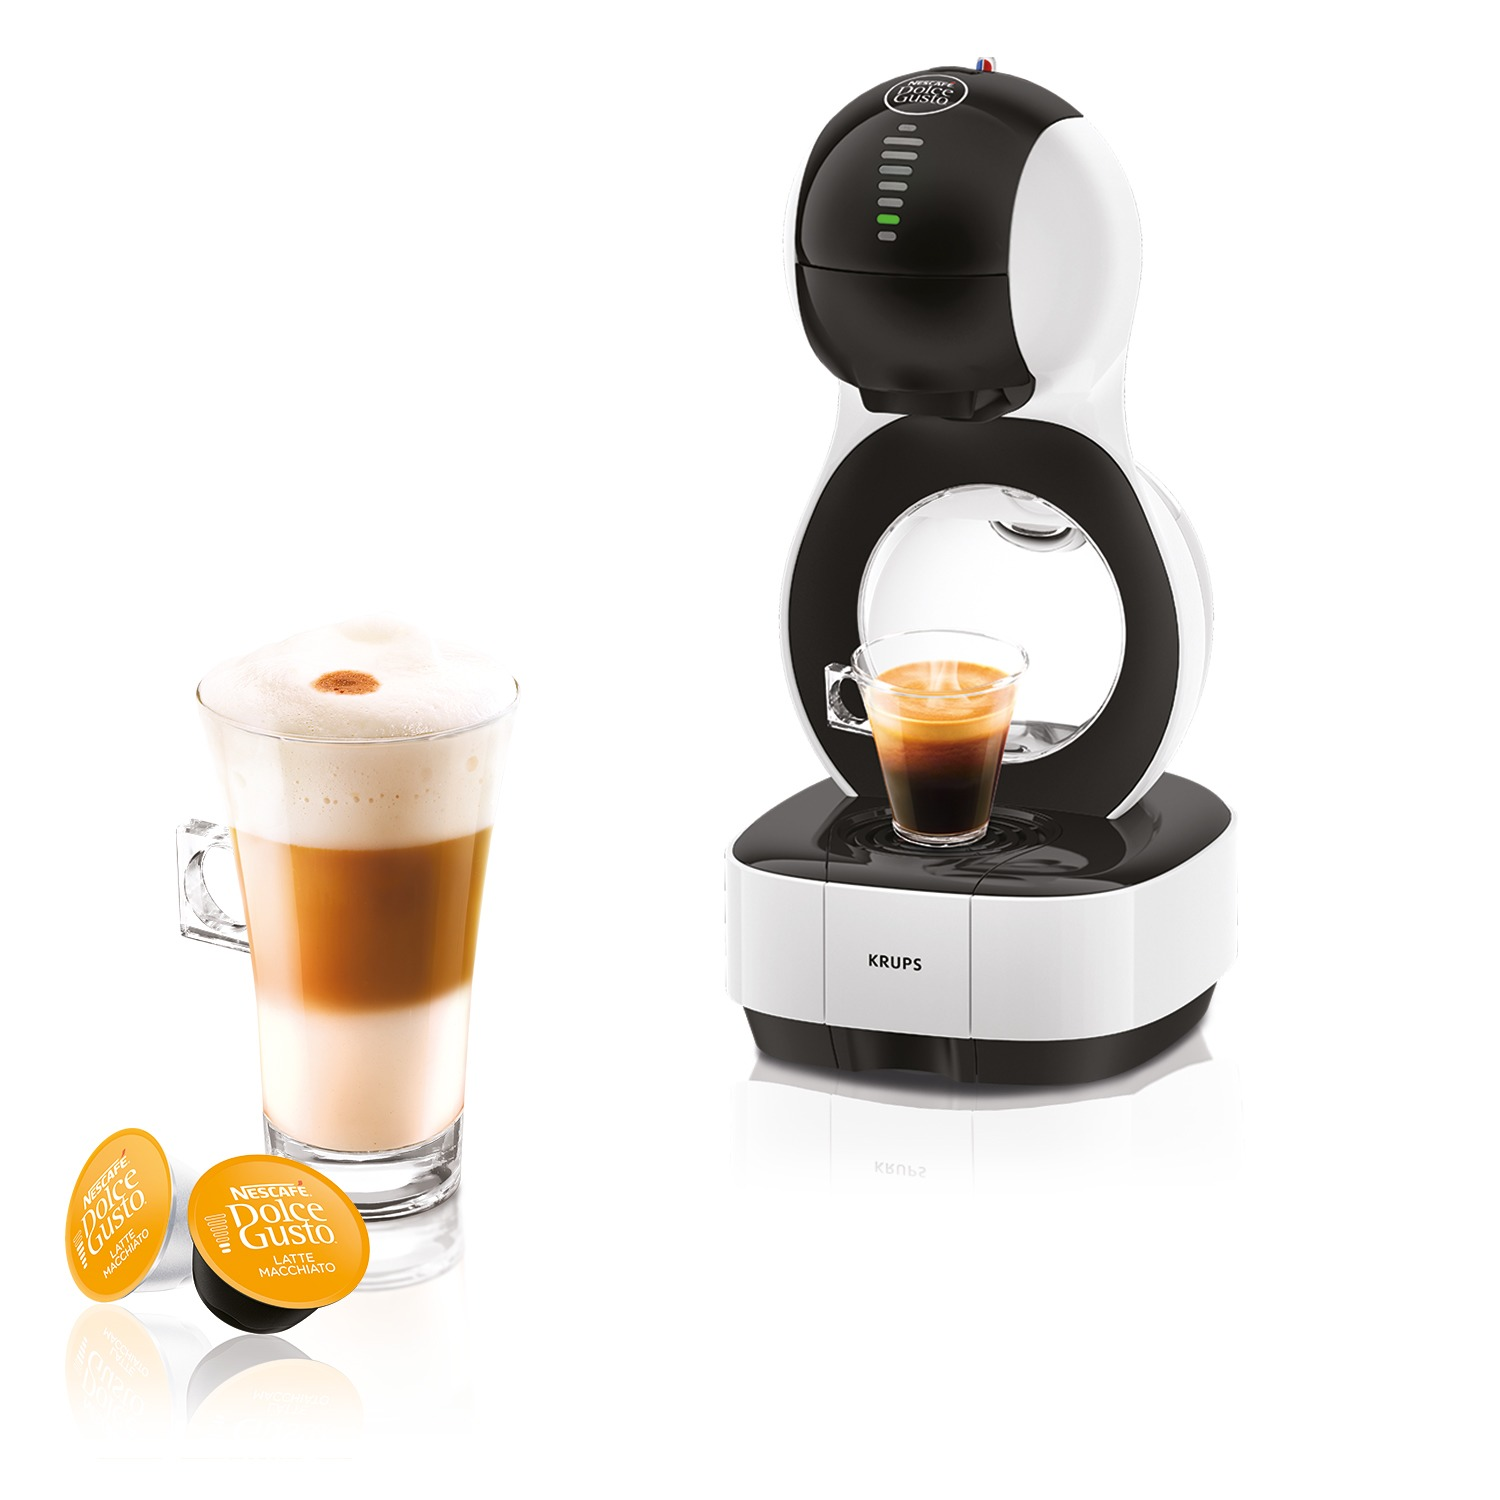 Krups KP1301 Dolce Gusto Lumio Espresso apparaat Wit